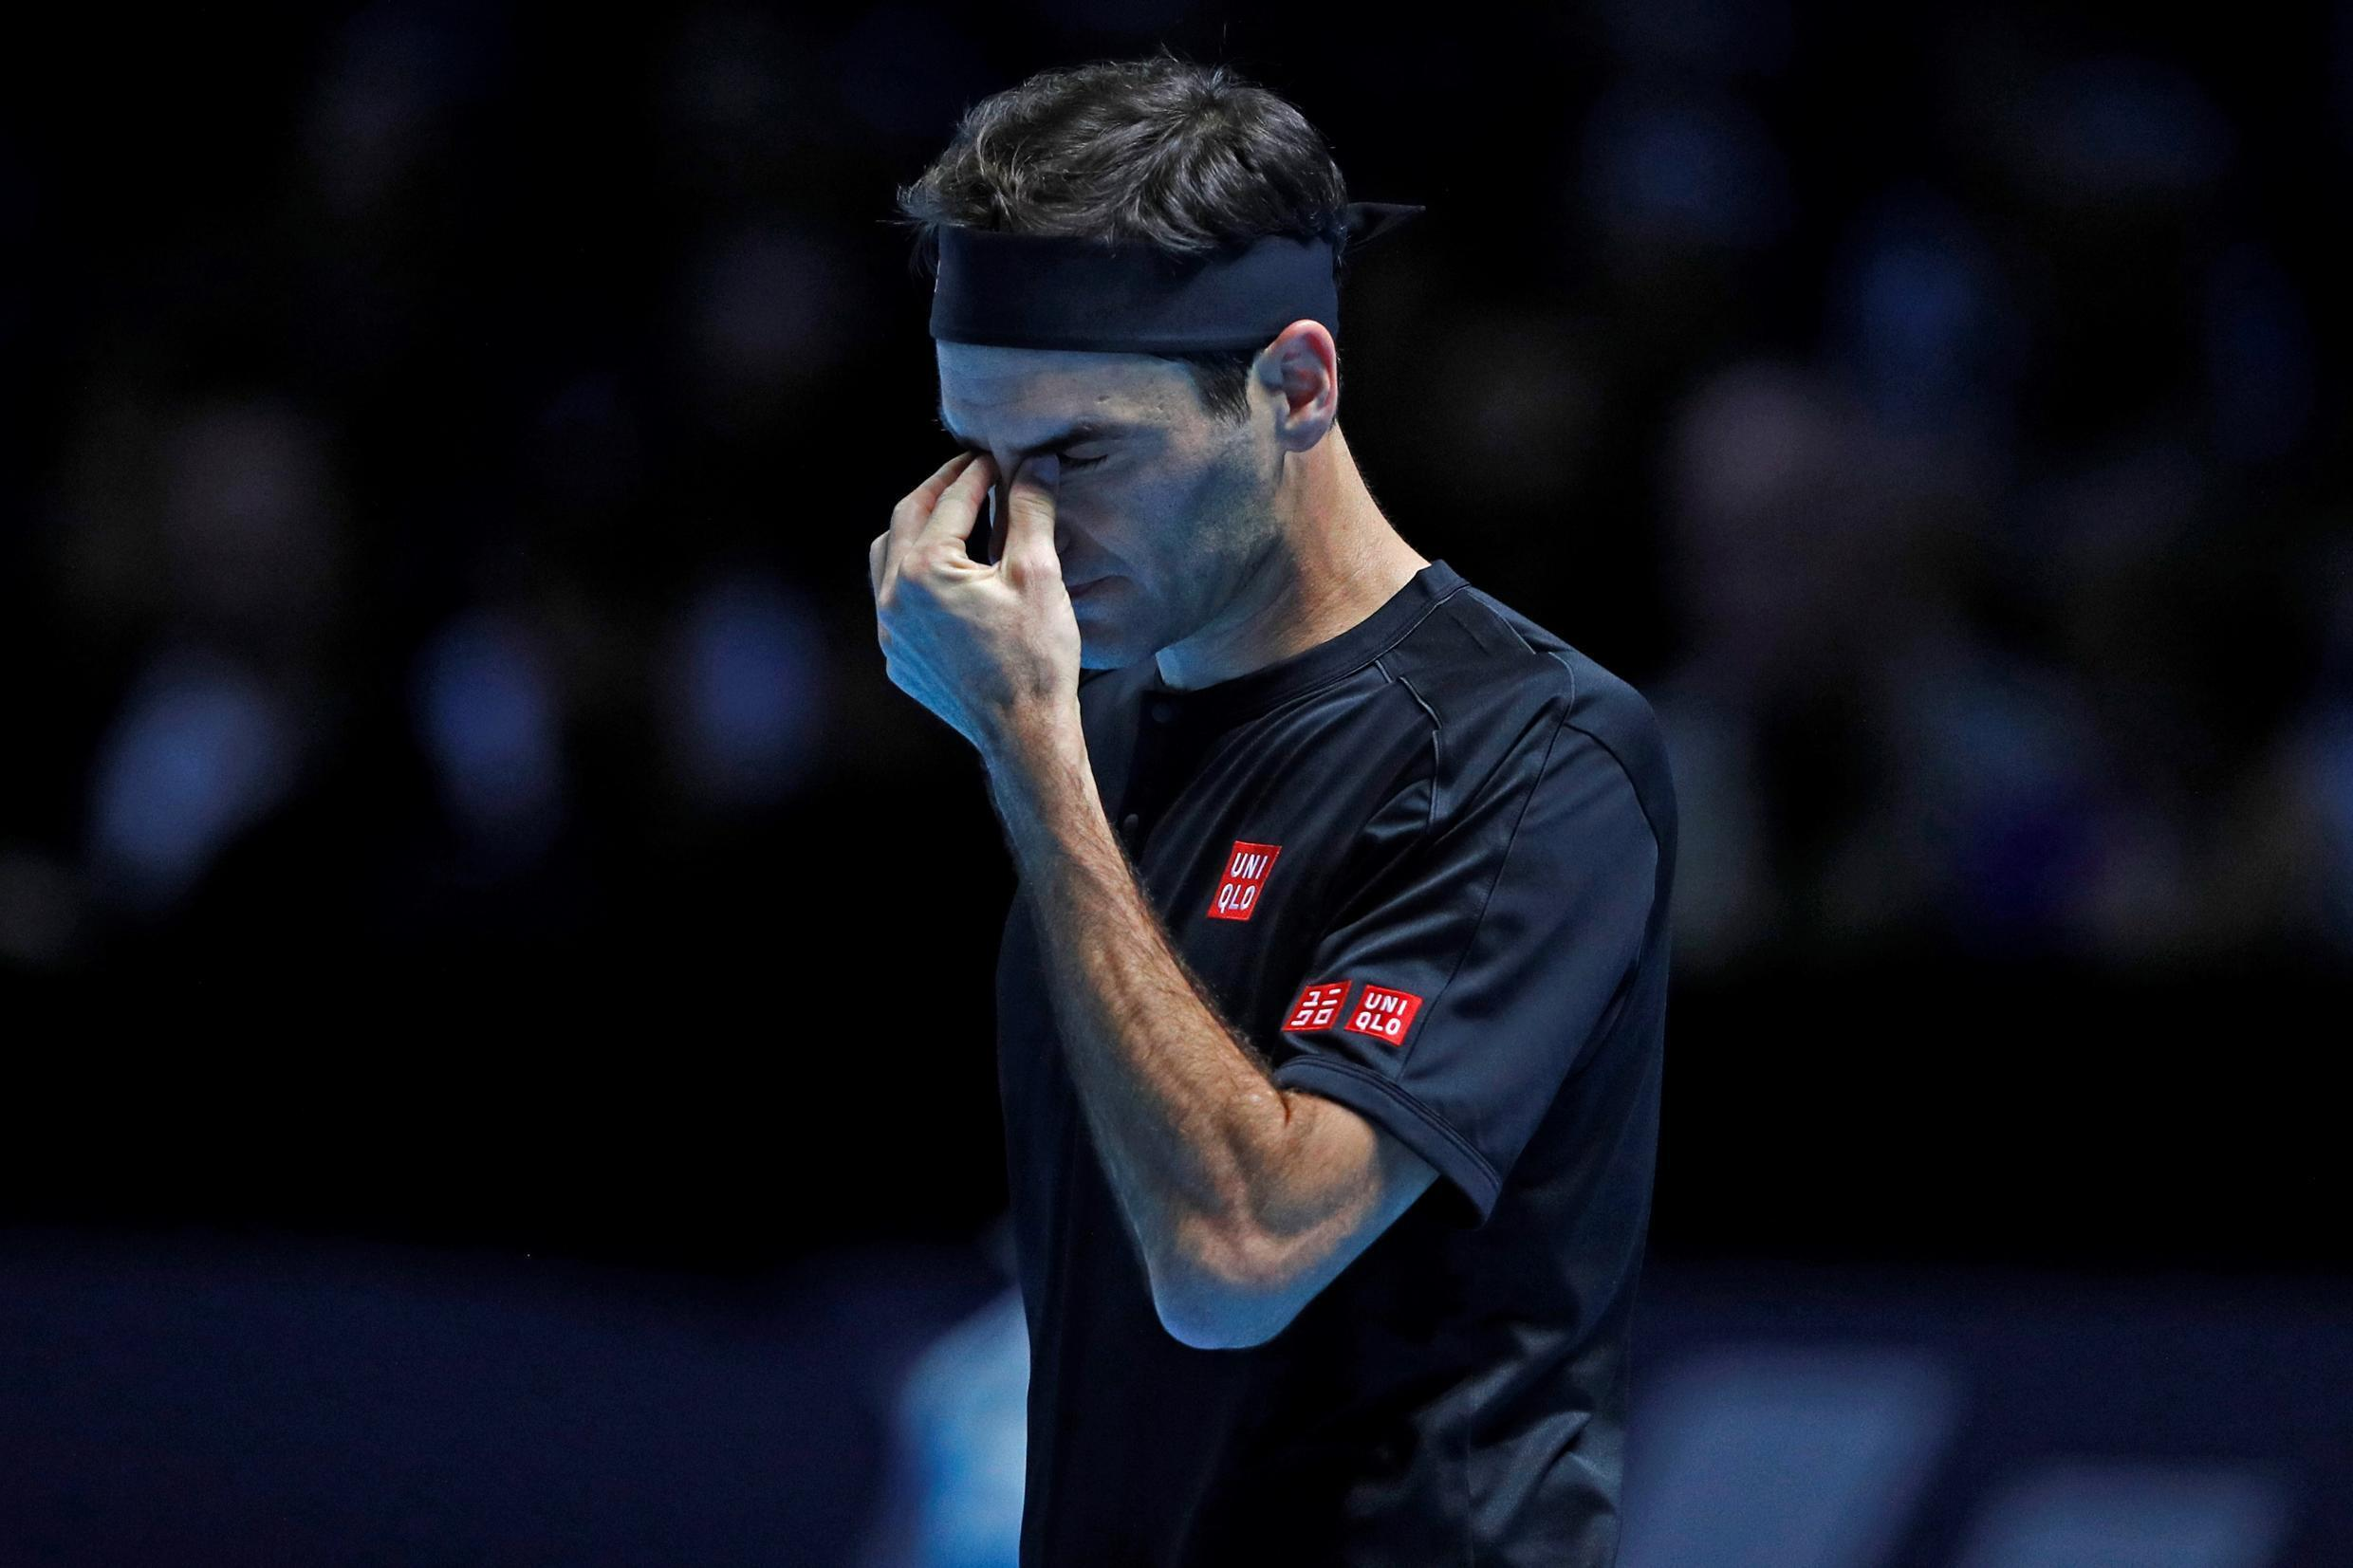 Roger Federer will miss the rest of the 2020 season to recover from a knee injury.